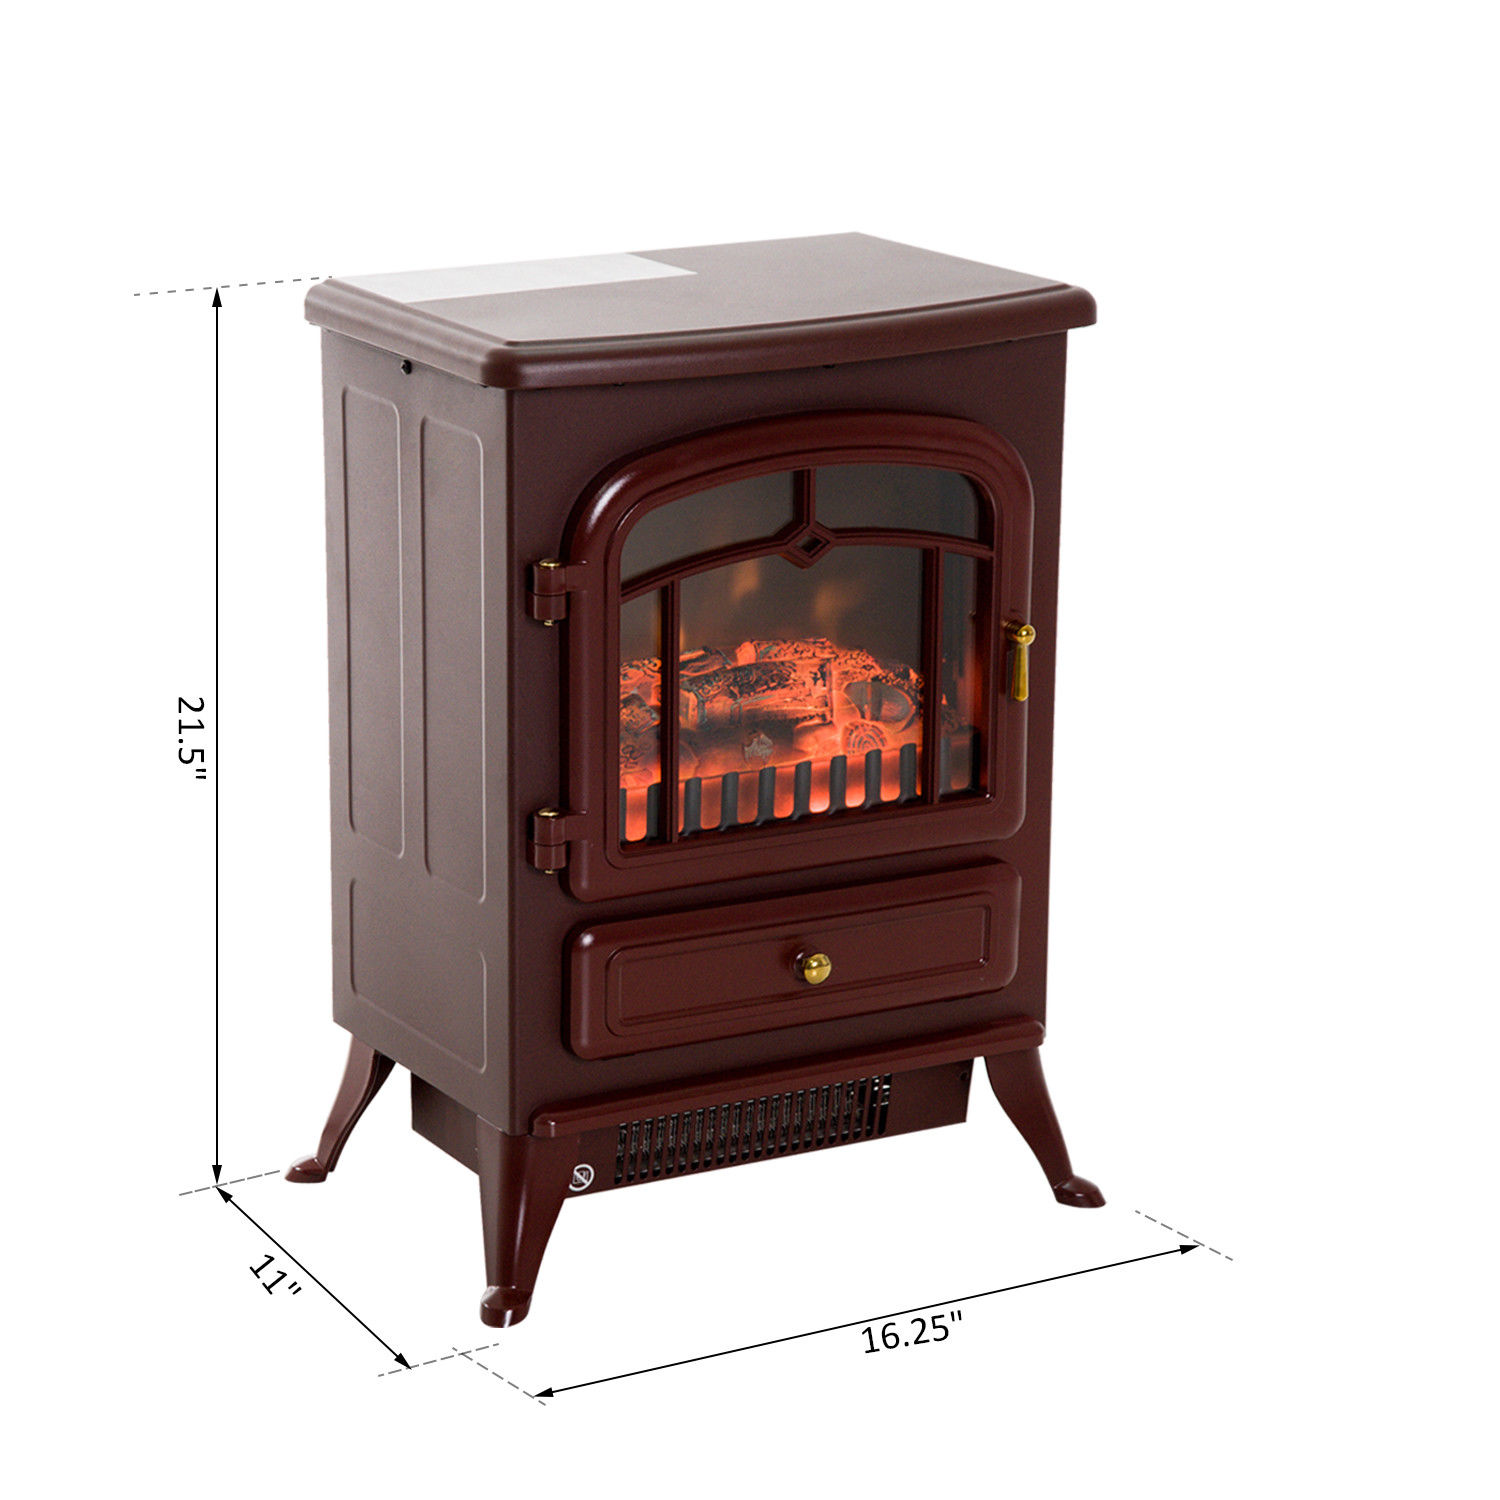 HOMCOM-750-1500W-Portable-Electric-Fireplace-Stove-Heater-Adjustable-LED-Flames thumbnail 10